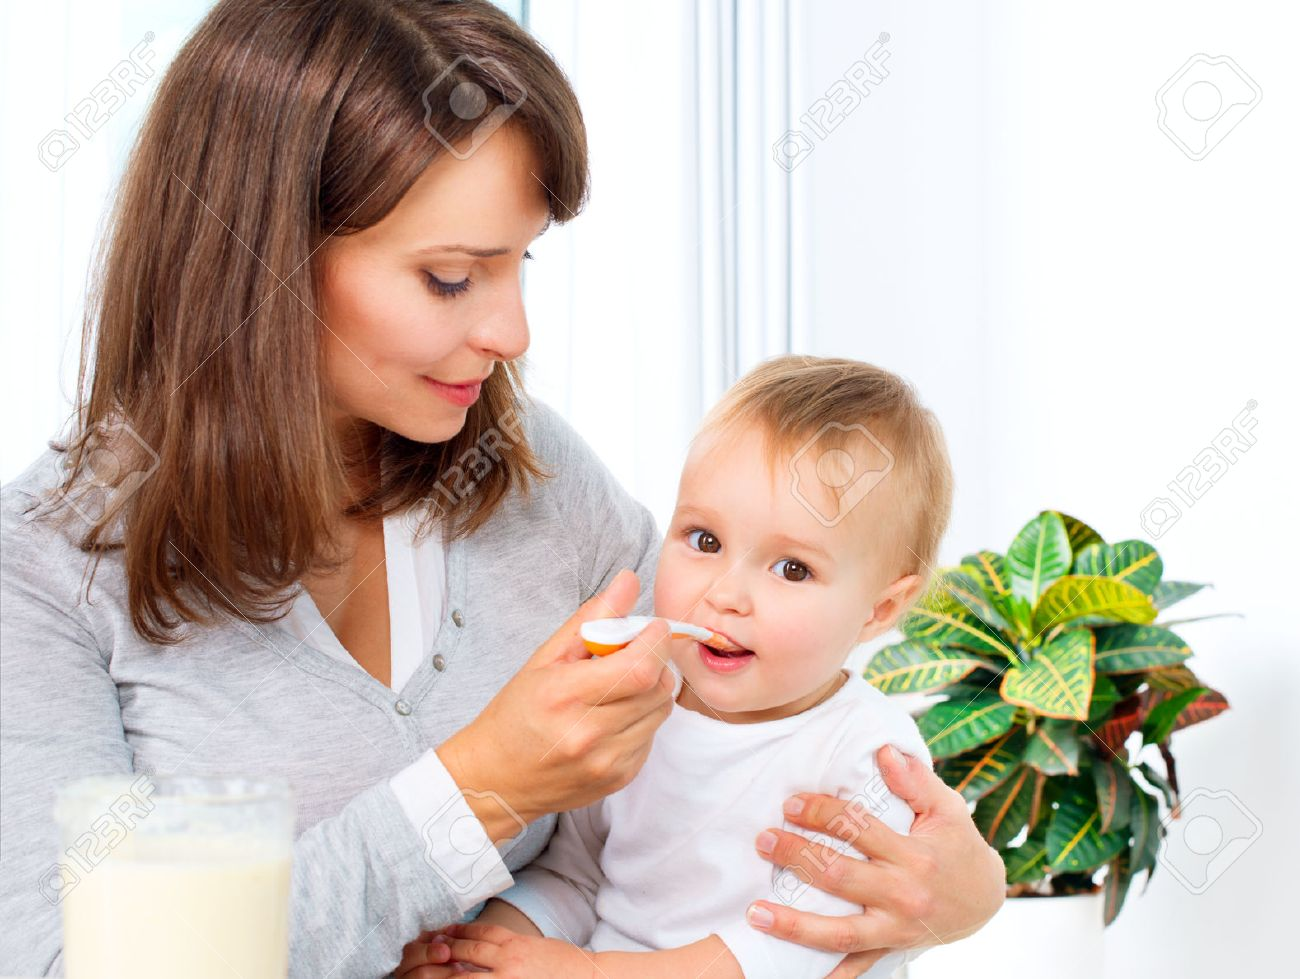 Mother Feeding Her Baby Girl with a Spoon Stock Photo - 22455290